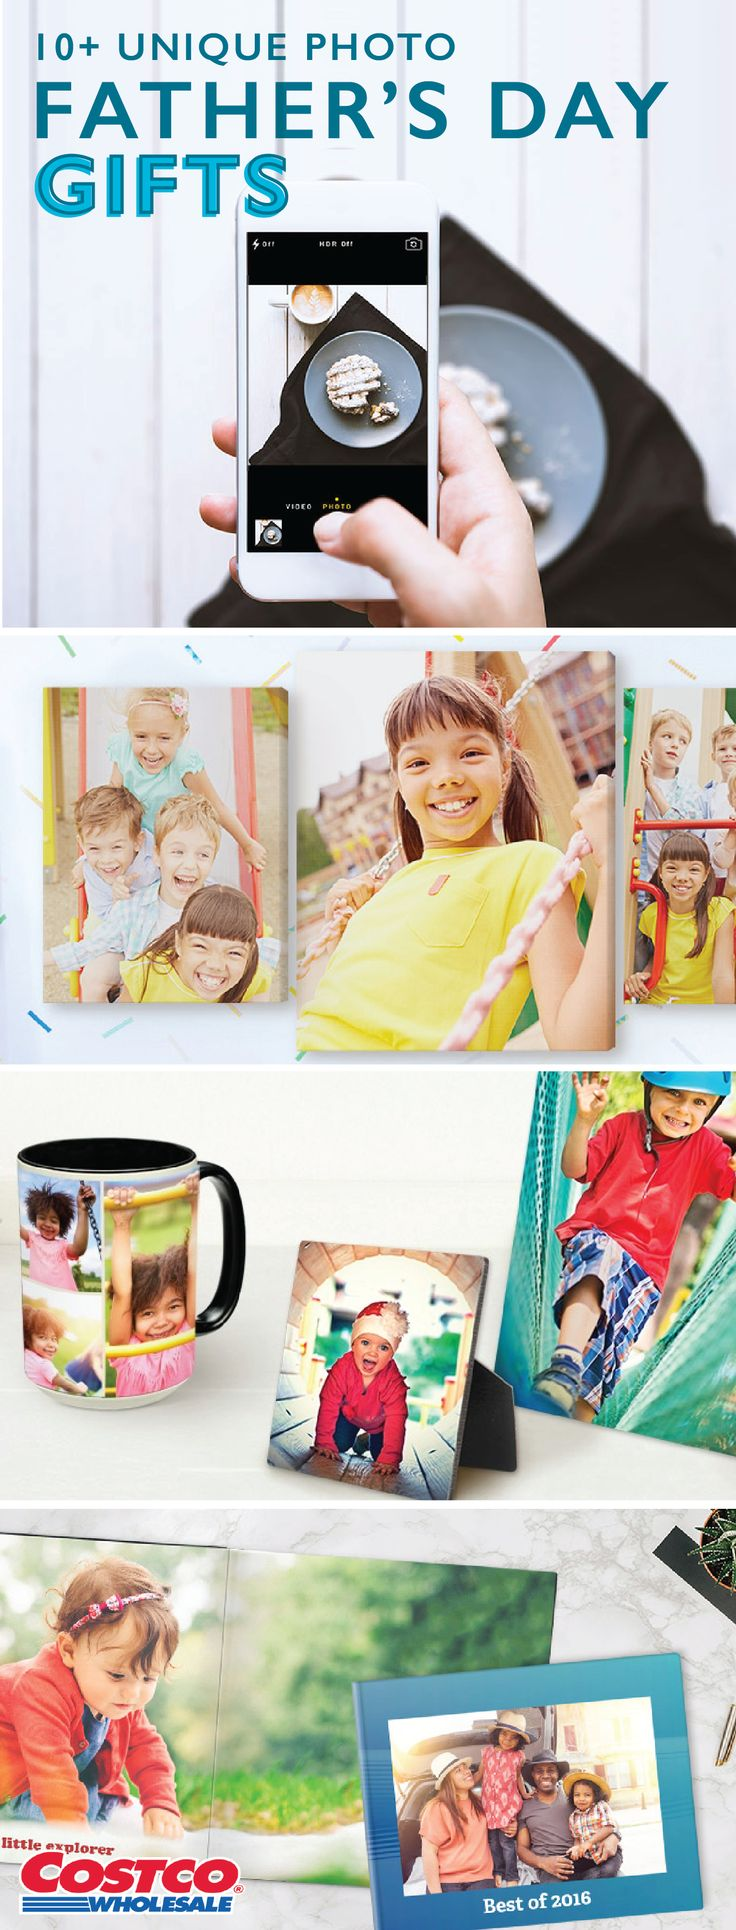 Show the dads in your life how much their kids love them by checking out these 10+ Unique Photo Father's Day Gifts from Costco. With fun and creative ways to print their favorite pictures, Costco.com can help you find a thoughtful and memorable present this year.